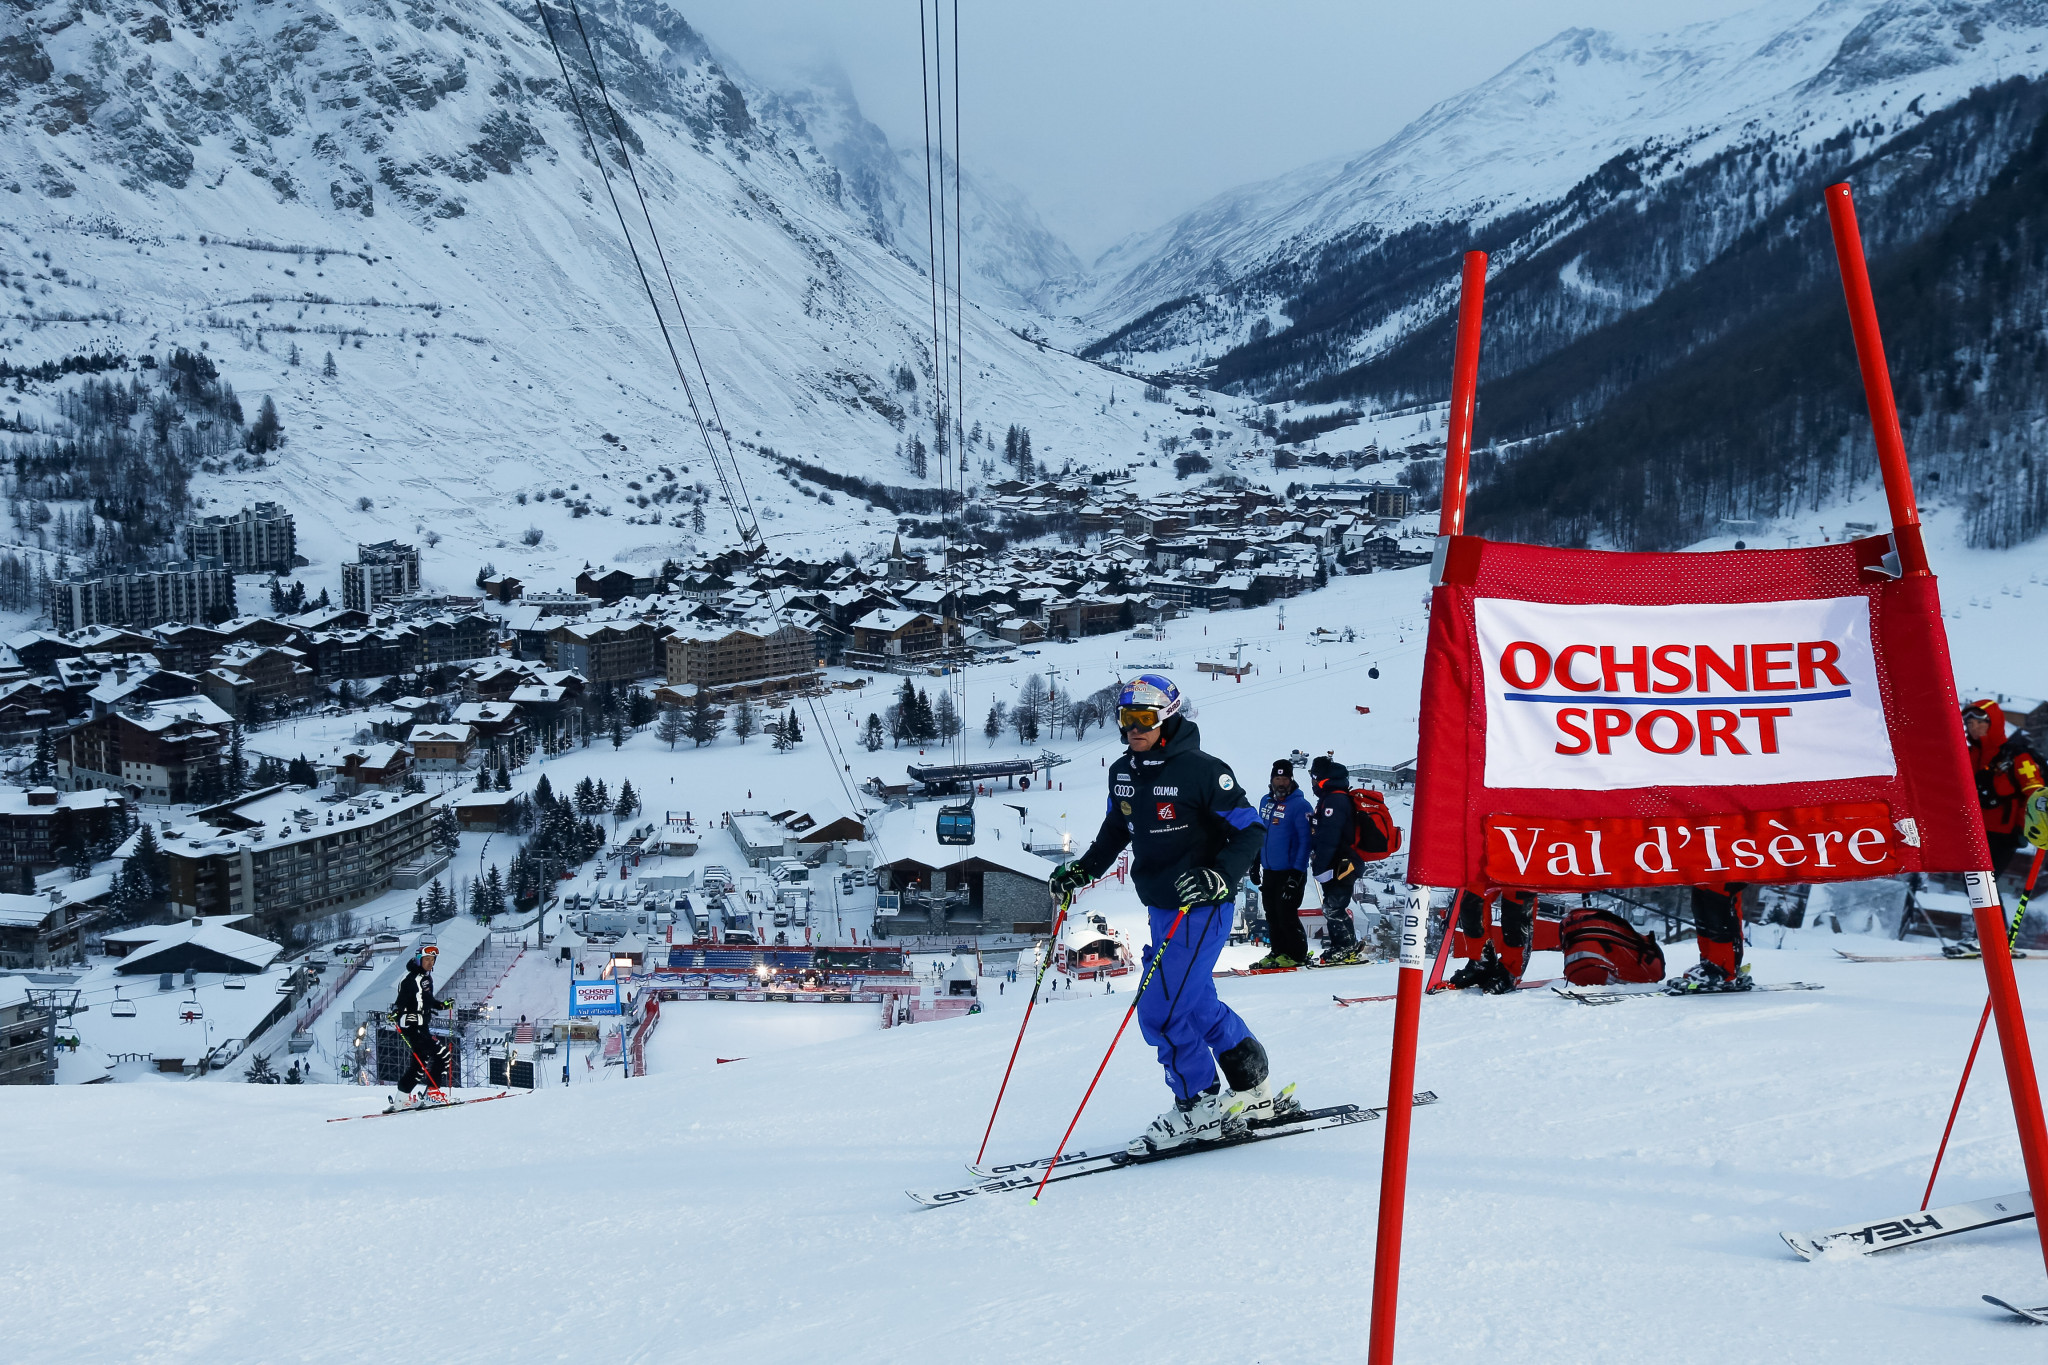 St Moritz and Val d'Isère prepared for classic FIS Alpine World Cup racing